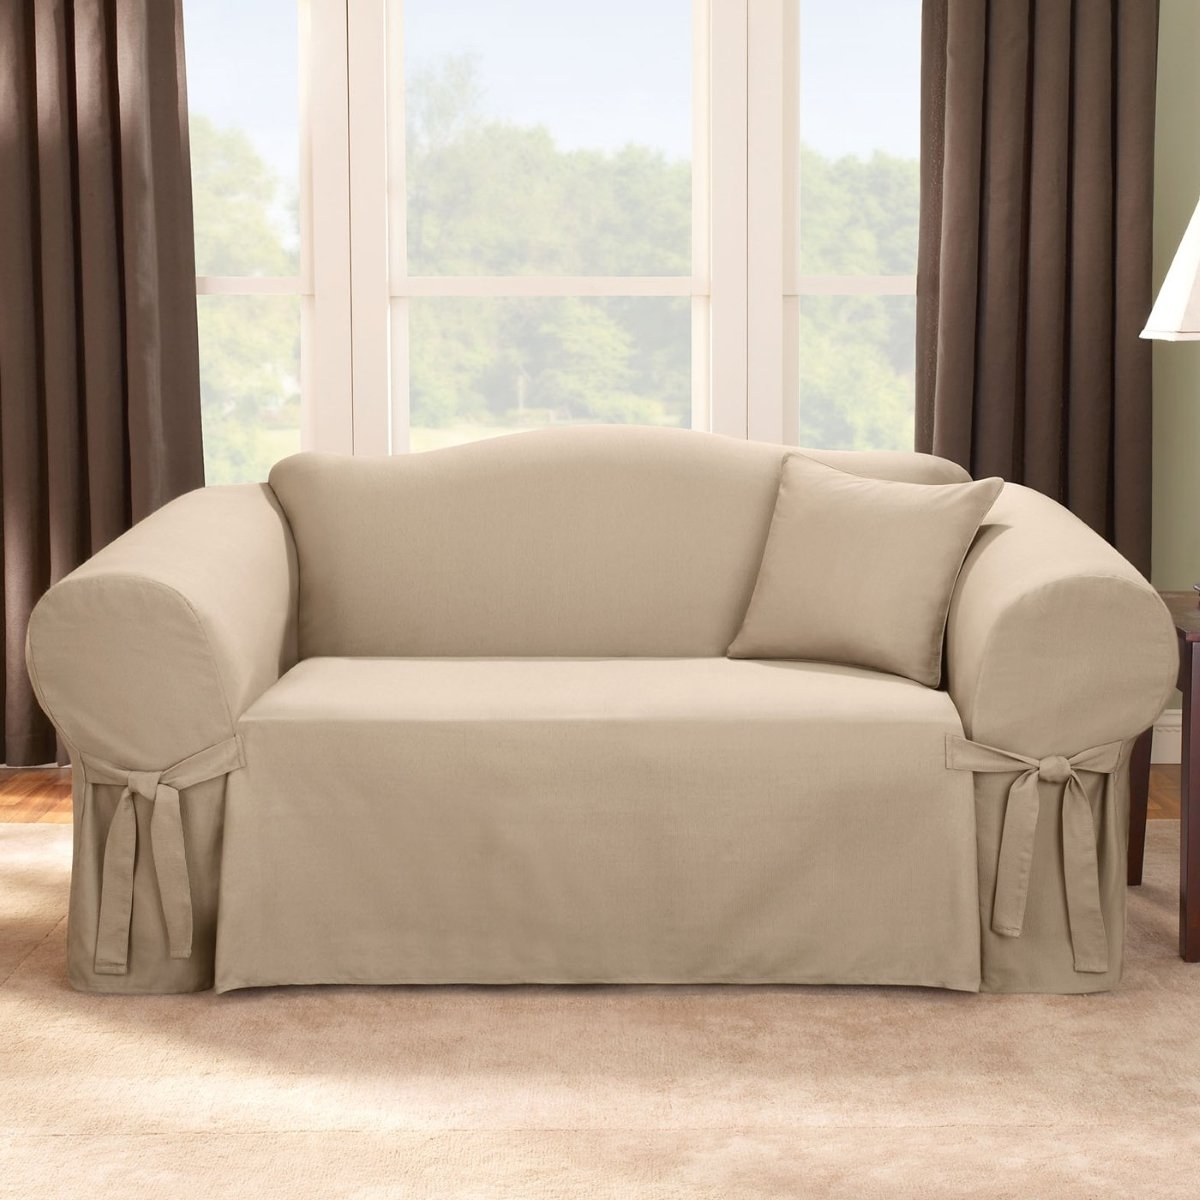 Sure Fit Slipcovers Target